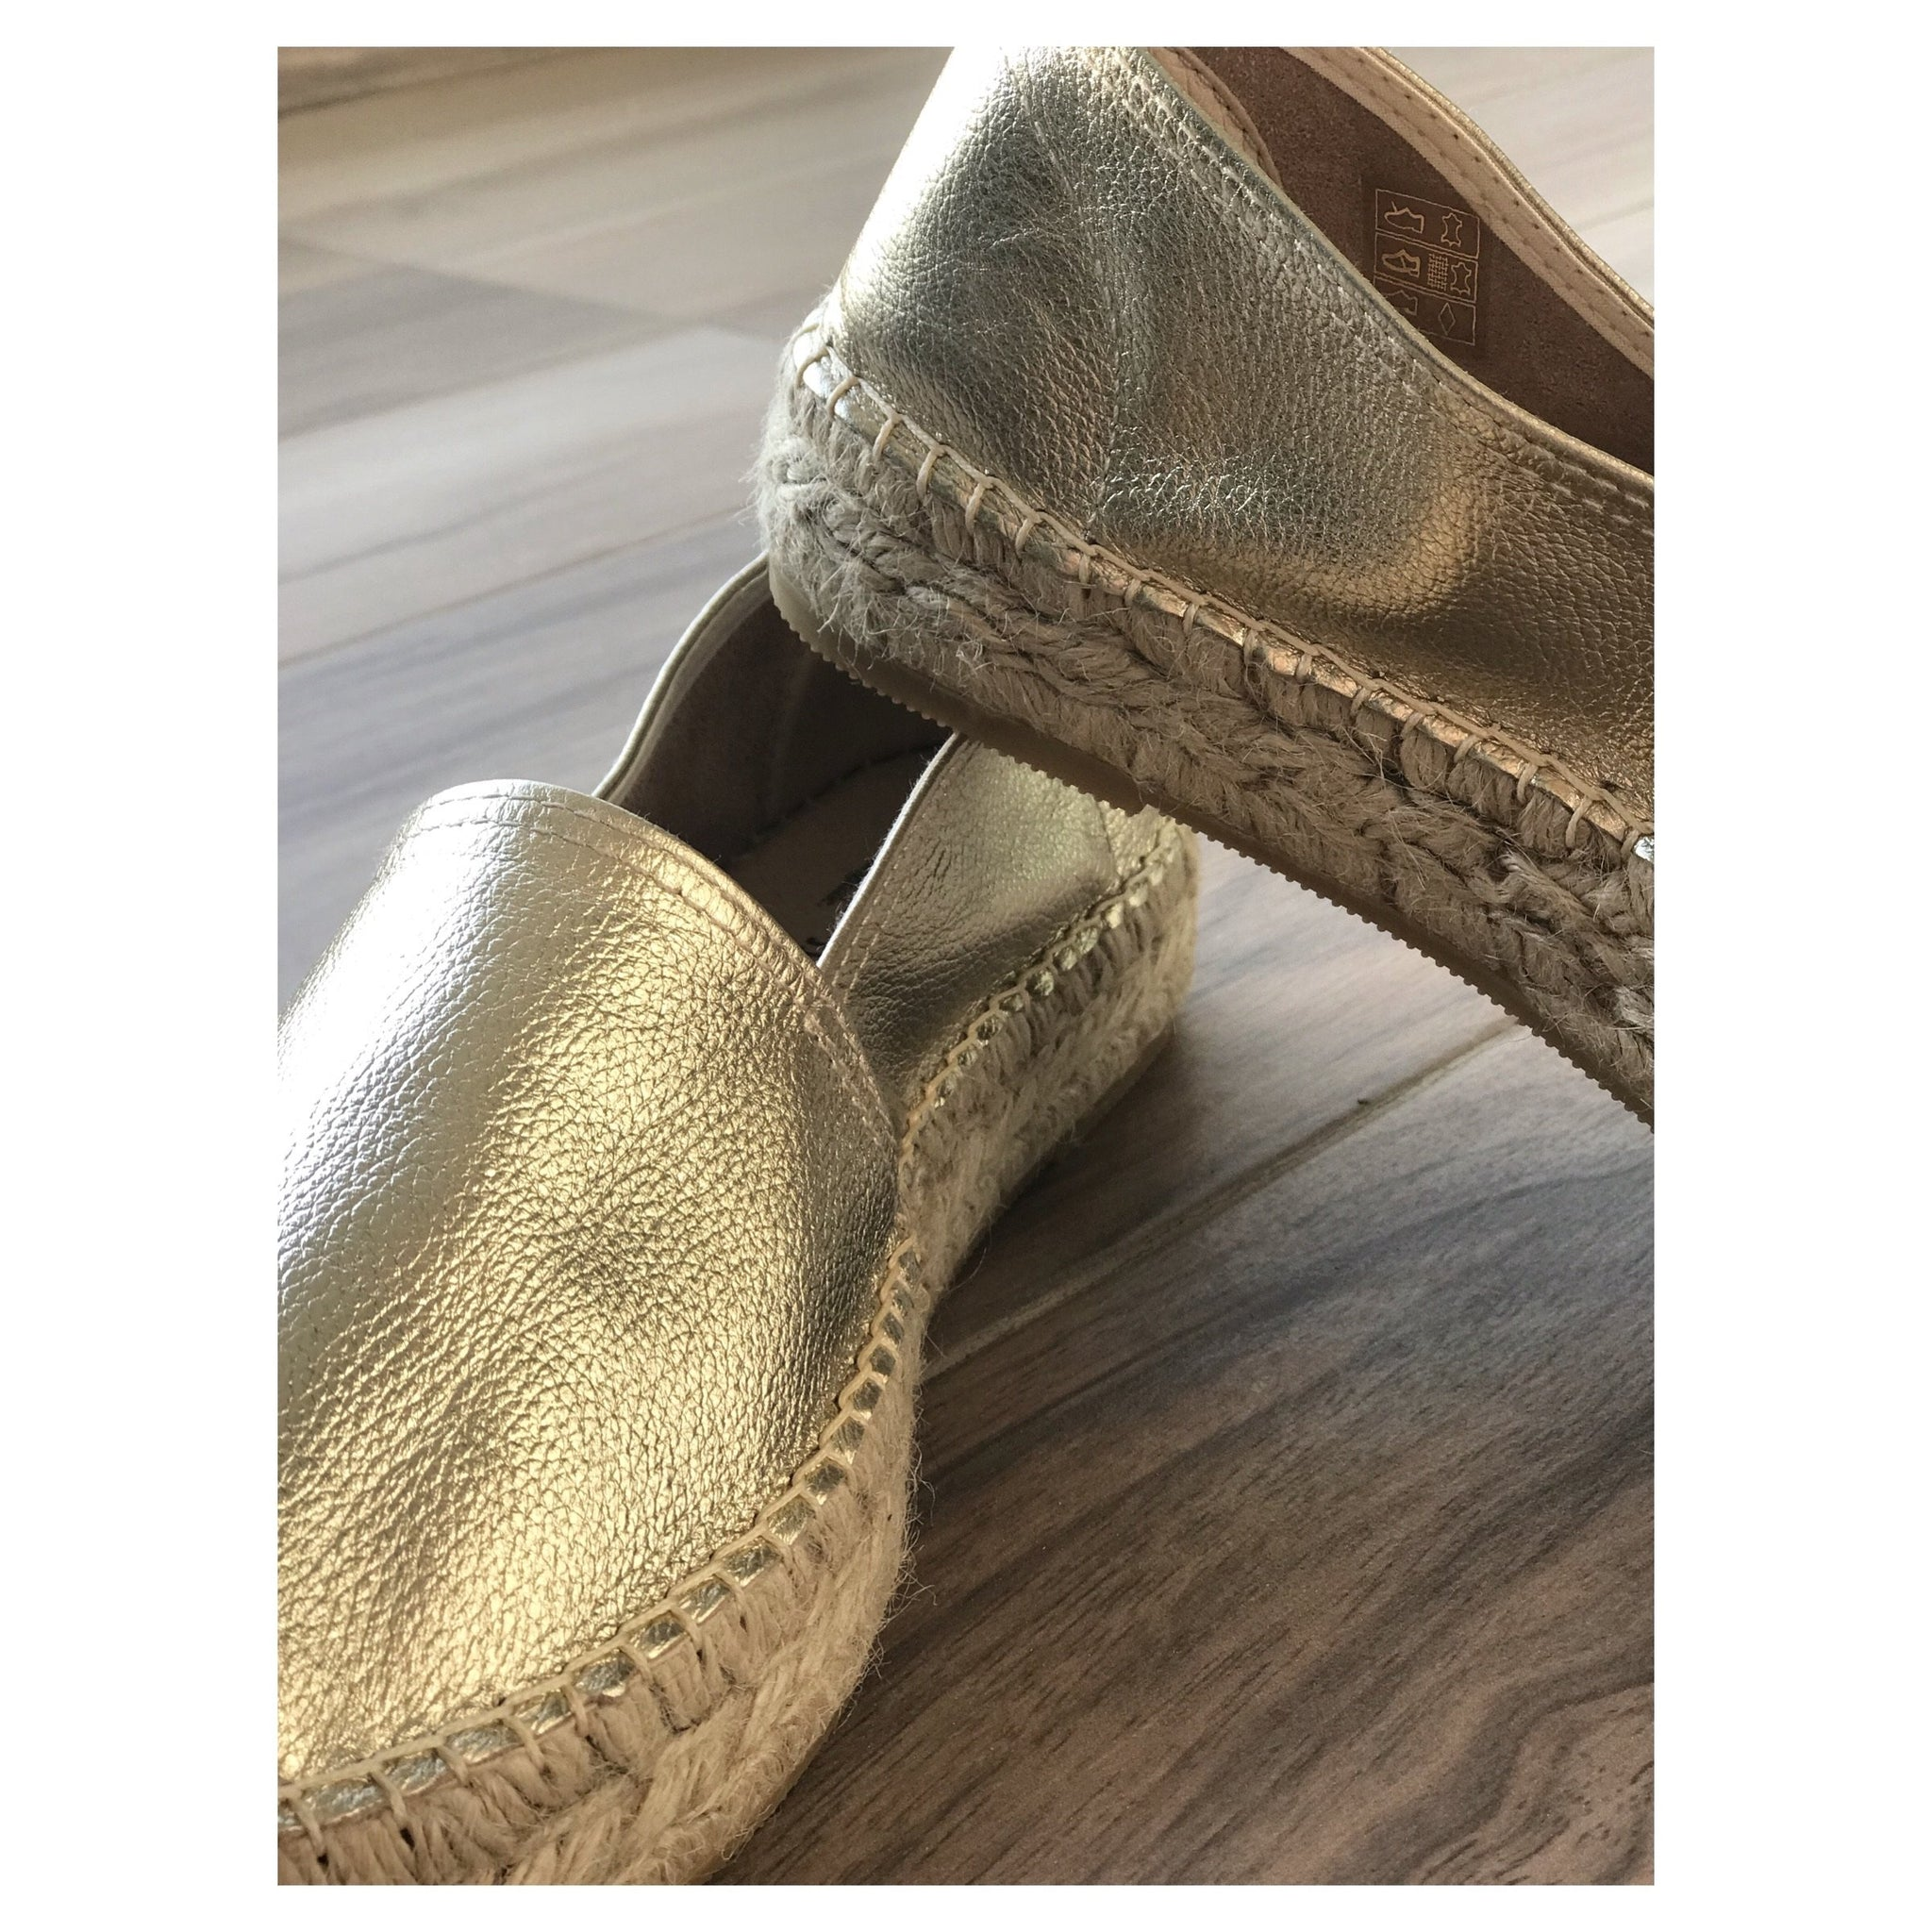 GRAFFITO GOLD ESPADRILLES.